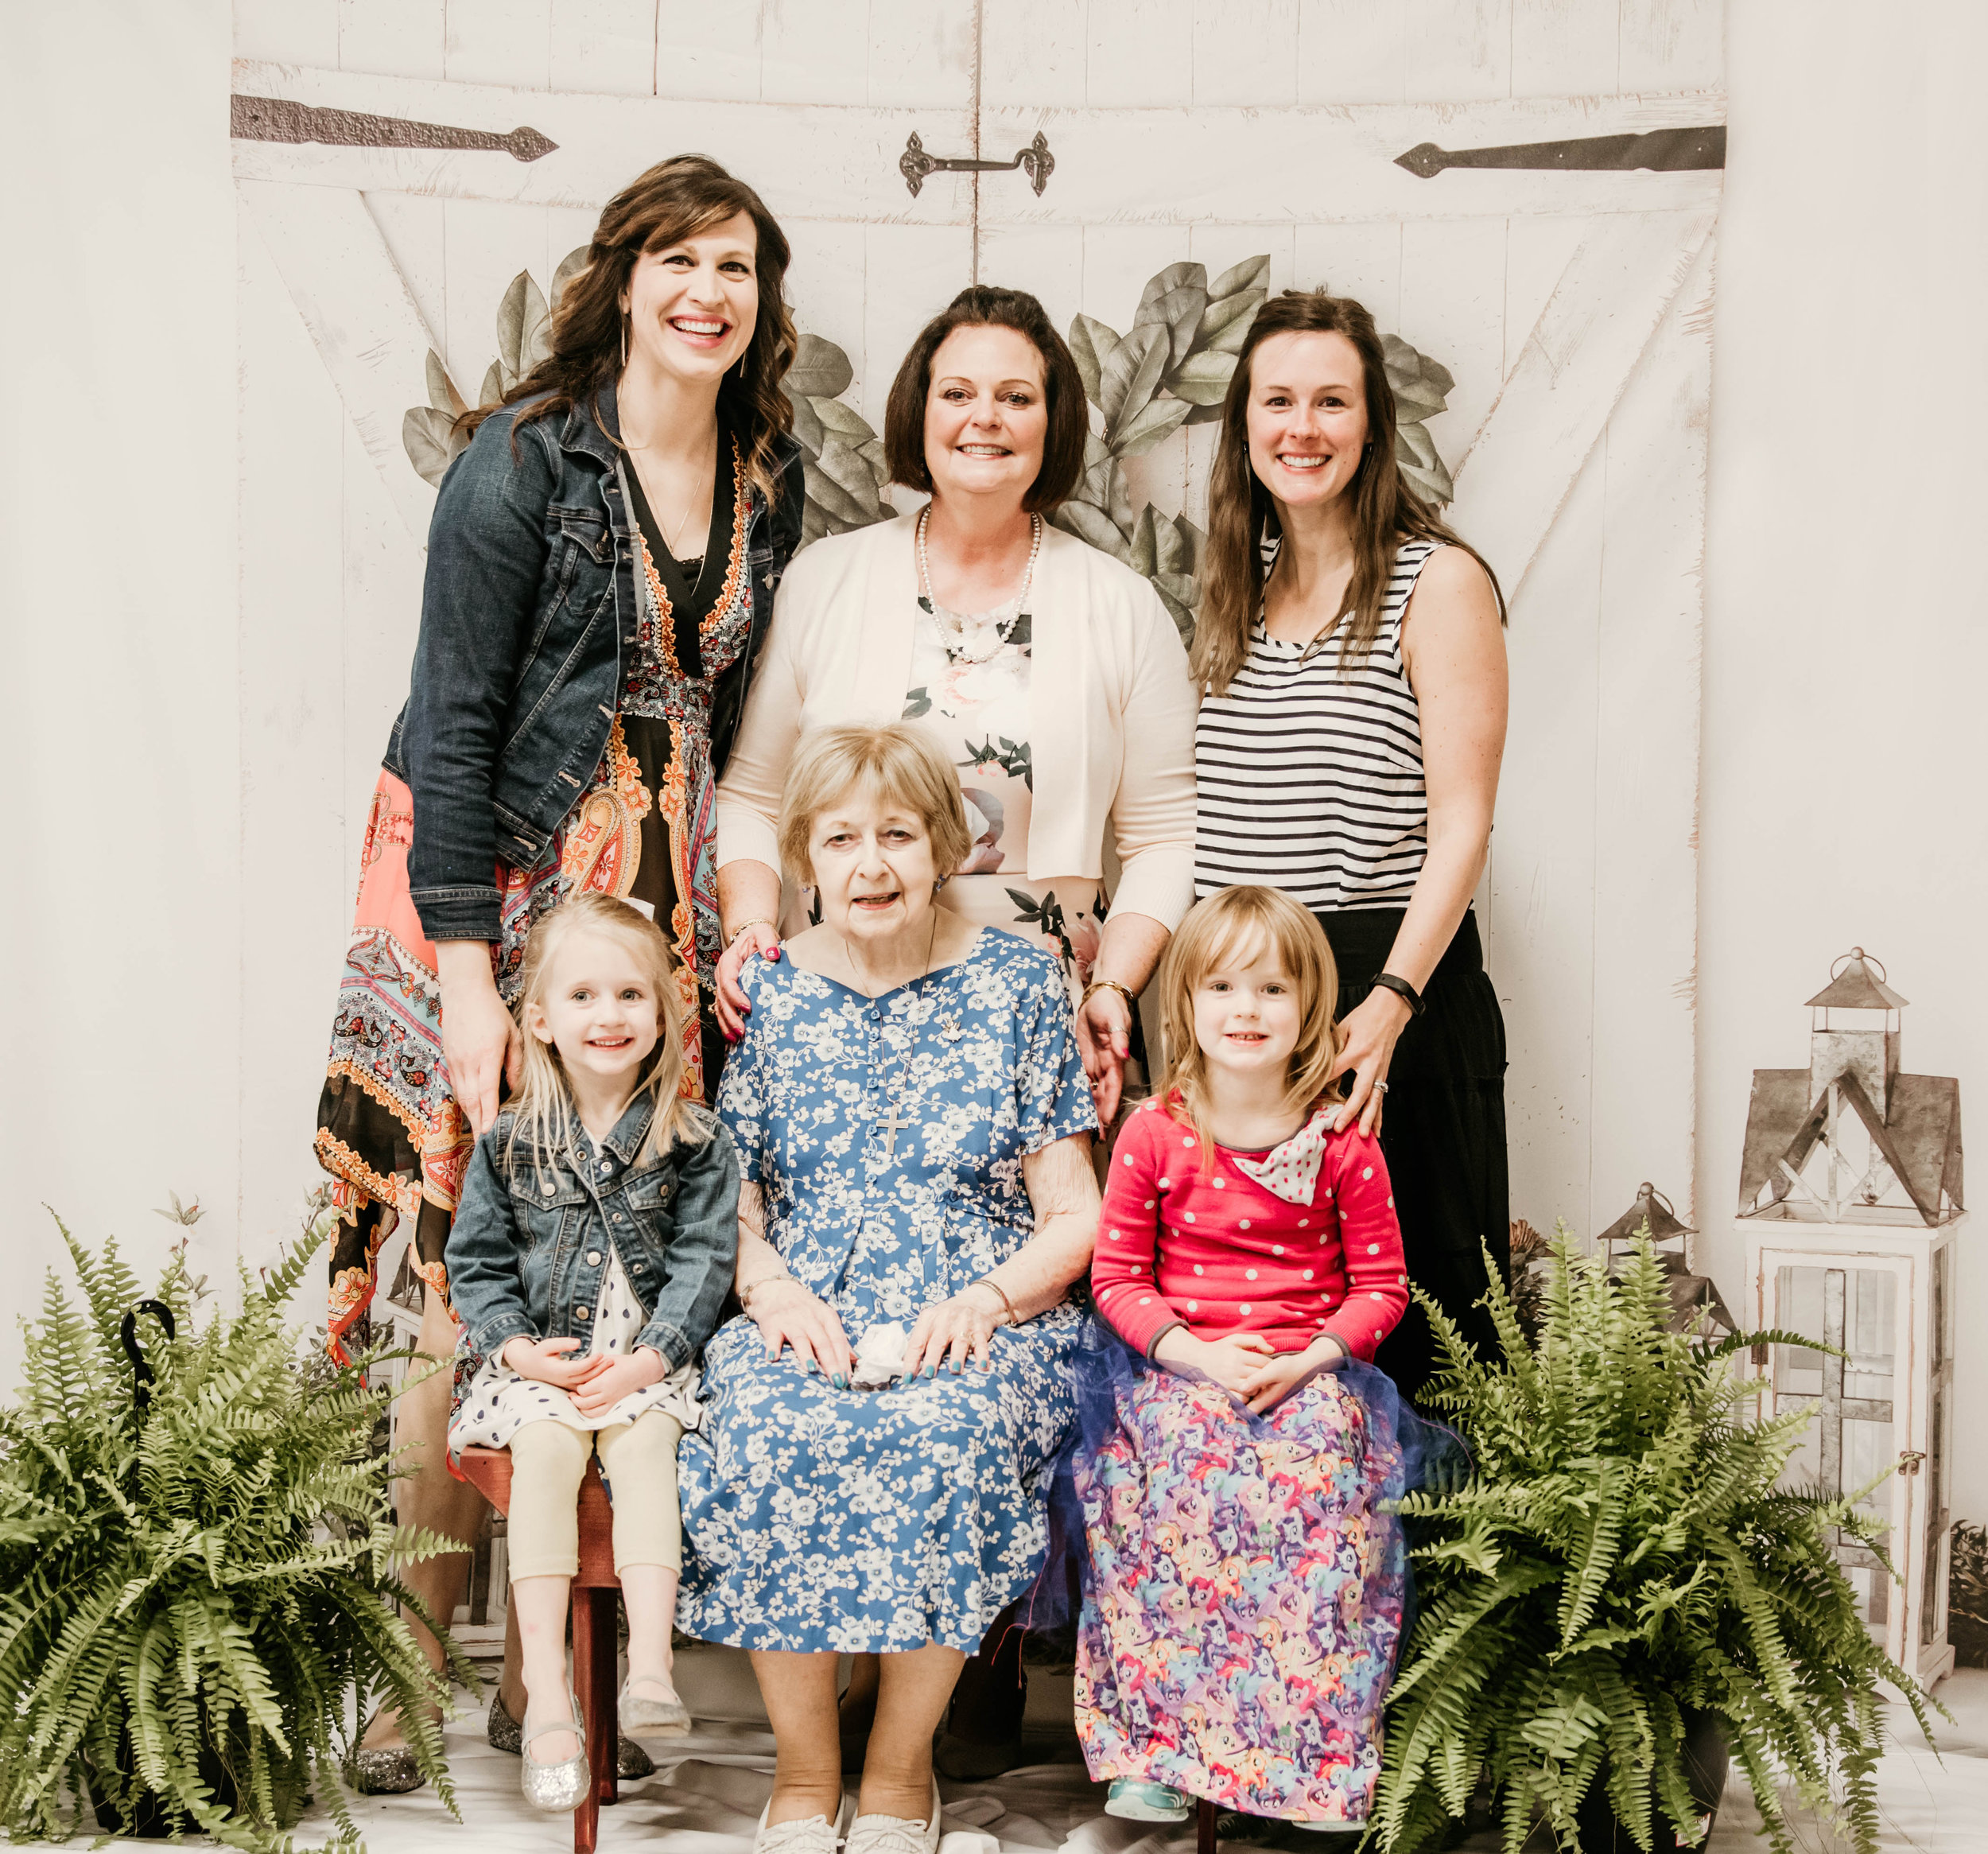 The setup I had for the event. Linda with her mom, daughter-in-laws, and granddaughters.  Thank you Linda for adding the ferns and providing the bench and white sheets.